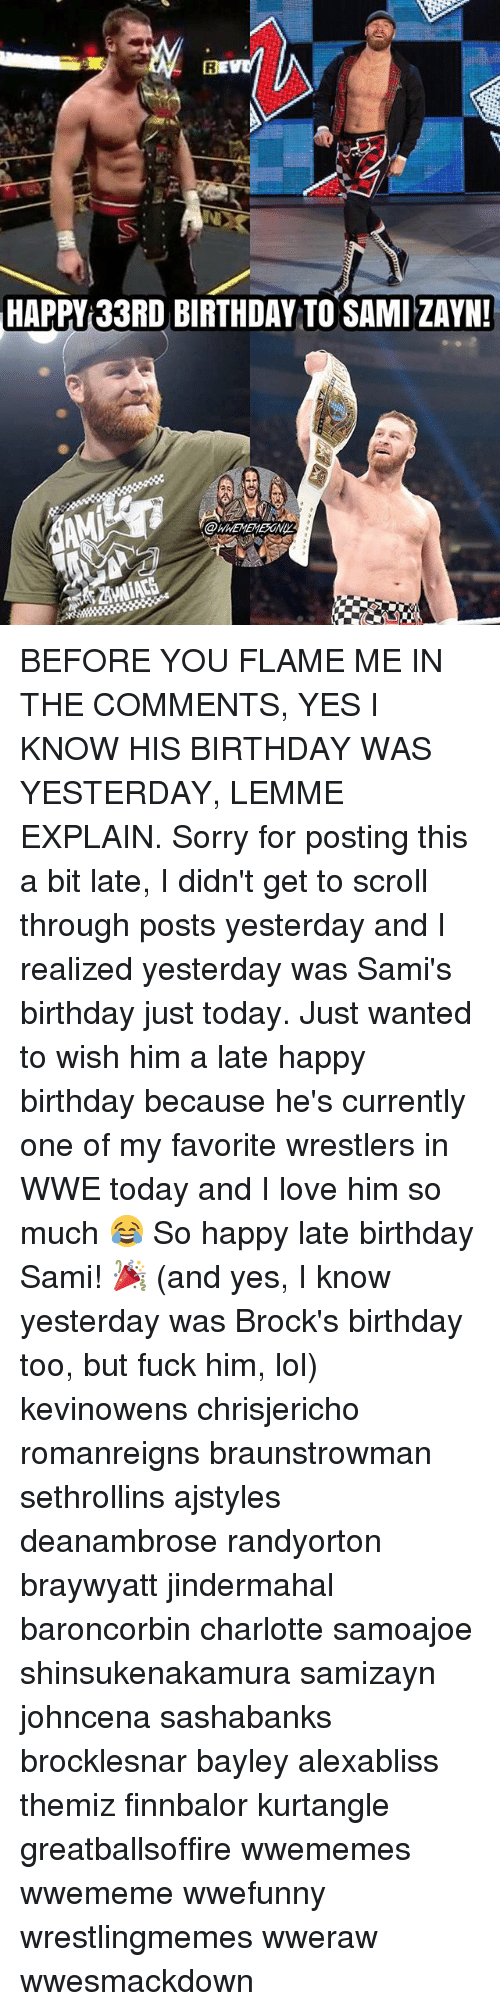 Bayley: HAPPY 33RD BIRTHDAY TO SAMI ZAYN!  @WWEMEMEEONI BEFORE YOU FLAME ME IN THE COMMENTS, YES I KNOW HIS BIRTHDAY WAS YESTERDAY, LEMME EXPLAIN. Sorry for posting this a bit late, I didn't get to scroll through posts yesterday and I realized yesterday was Sami's birthday just today. Just wanted to wish him a late happy birthday because he's currently one of my favorite wrestlers in WWE today and I love him so much 😂 So happy late birthday Sami! 🎉 (and yes, I know yesterday was Brock's birthday too, but fuck him, lol) kevinowens chrisjericho romanreigns braunstrowman sethrollins ajstyles deanambrose randyorton braywyatt jindermahal baroncorbin charlotte samoajoe shinsukenakamura samizayn johncena sashabanks brocklesnar bayley alexabliss themiz finnbalor kurtangle greatballsoffire wwememes wwememe wwefunny wrestlingmemes wweraw wwesmackdown